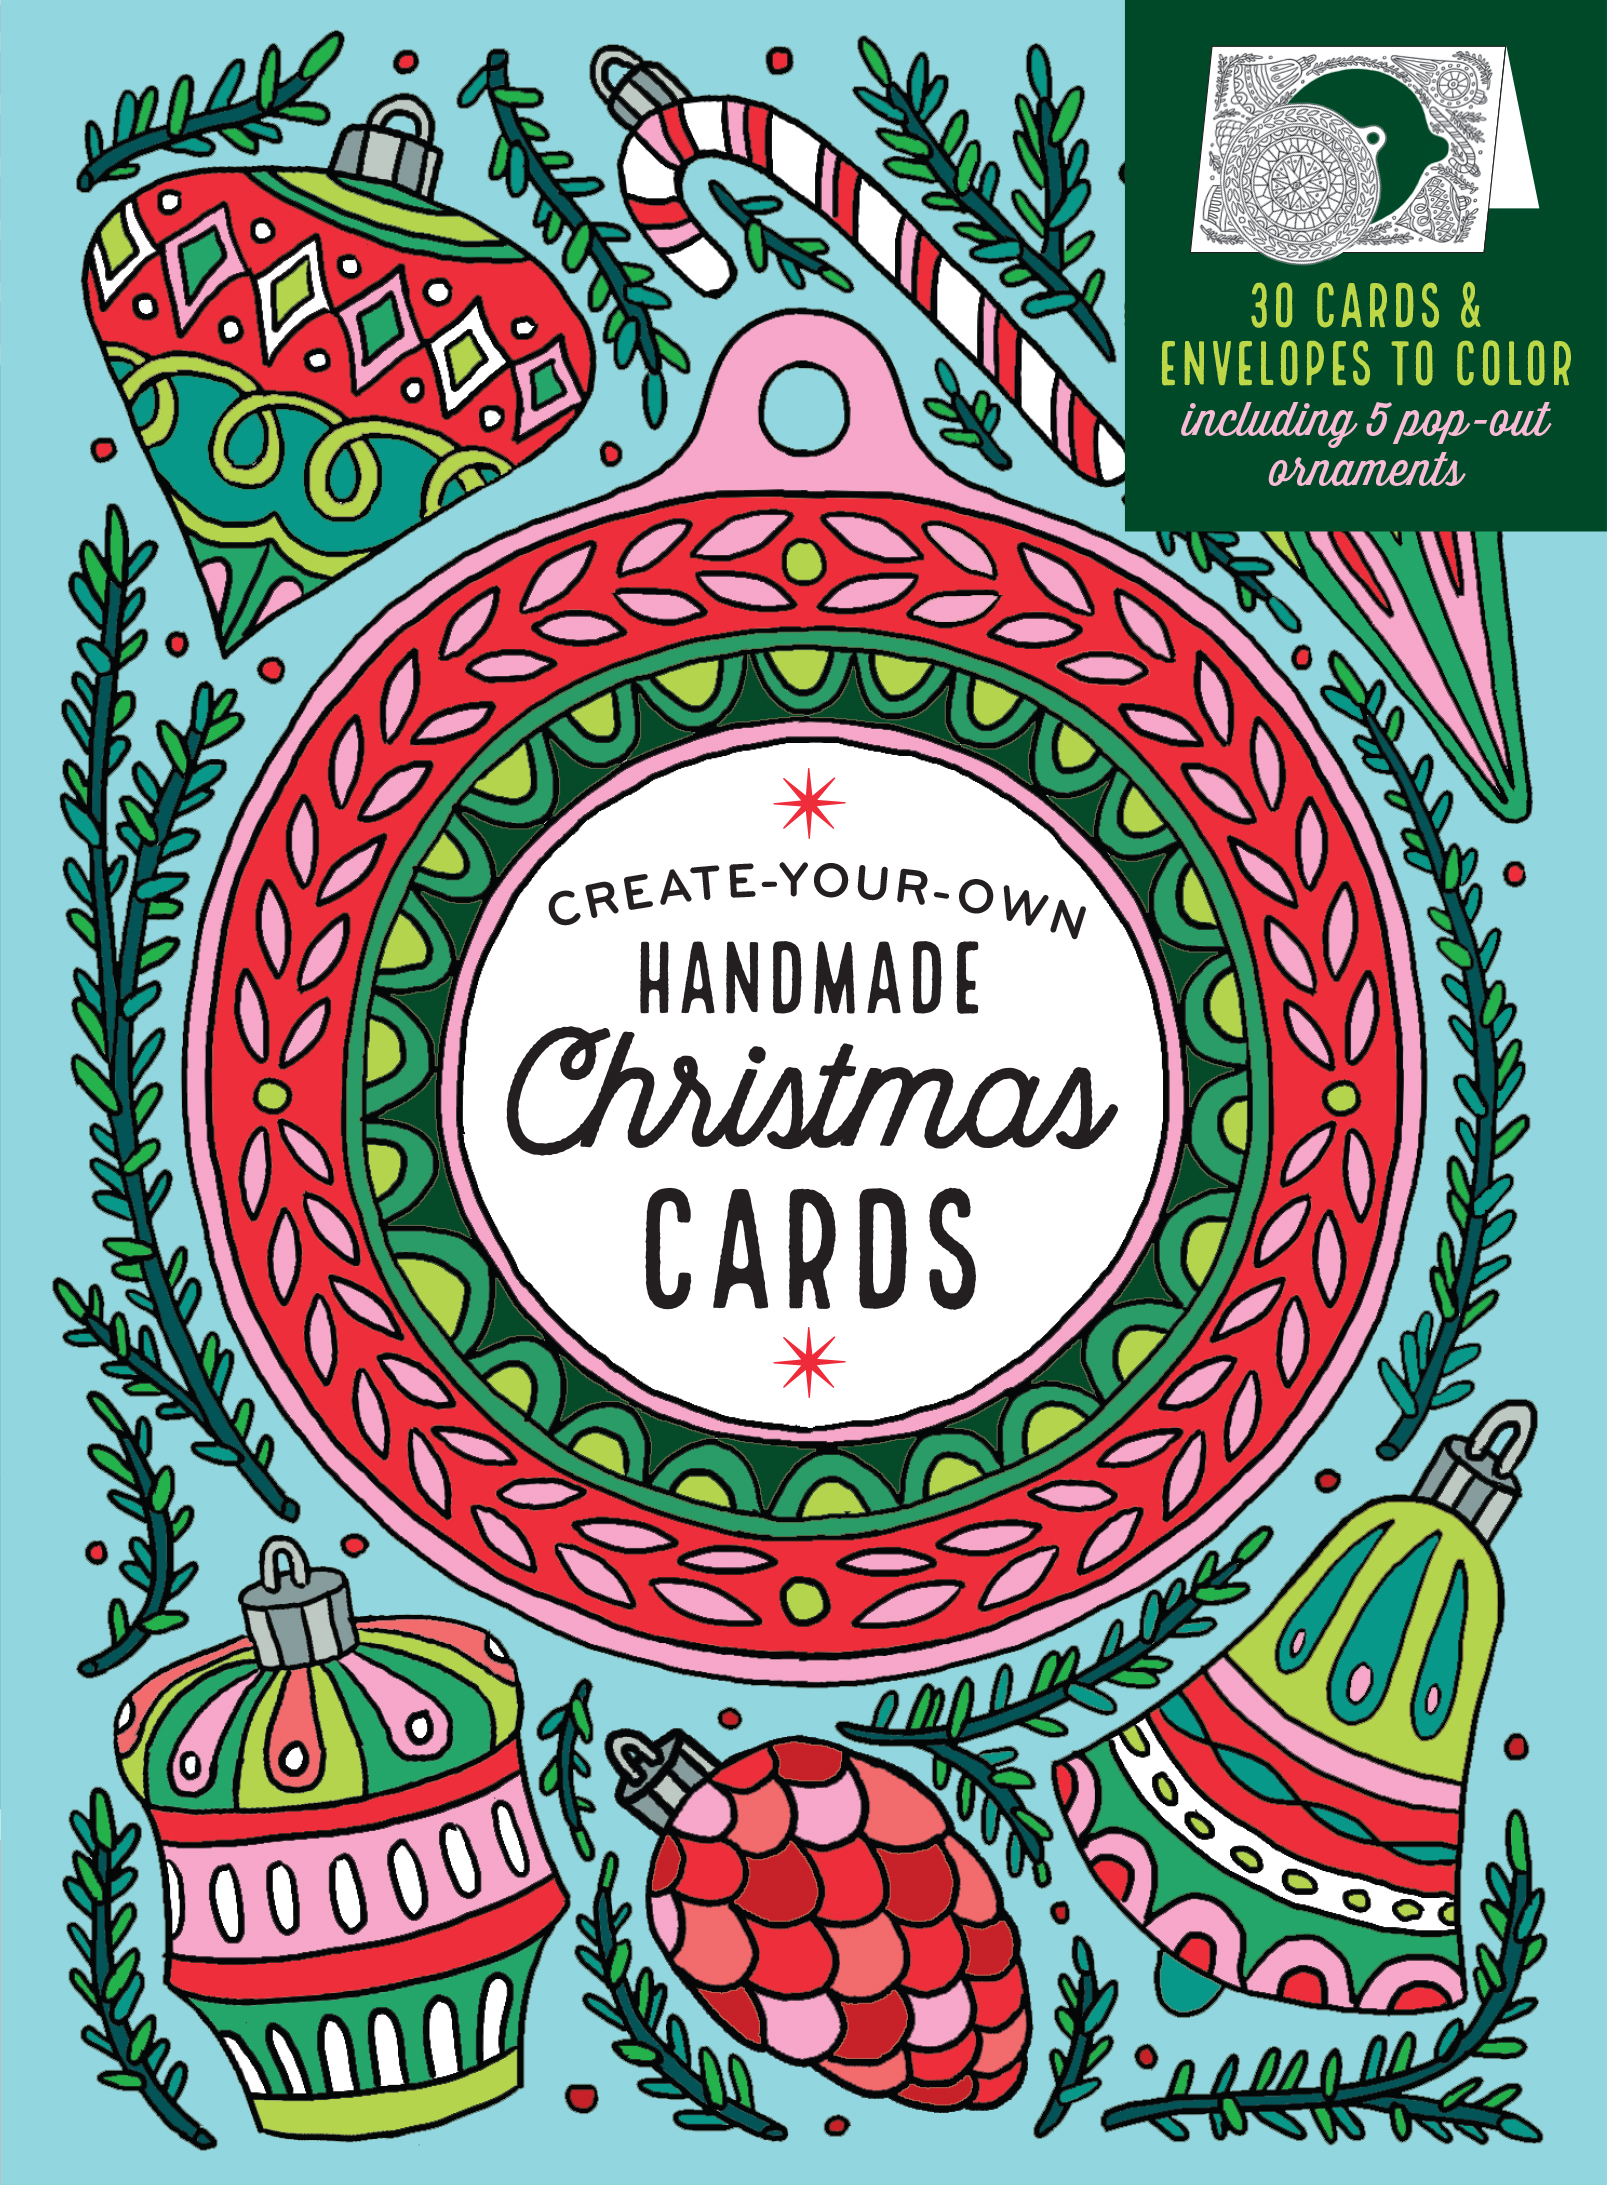 Create-Your-Own Handmade Christmas Cards 30 Cards & Envelopes to Color, Including 5 Pop-Out Ornaments - Caitlin Keegan